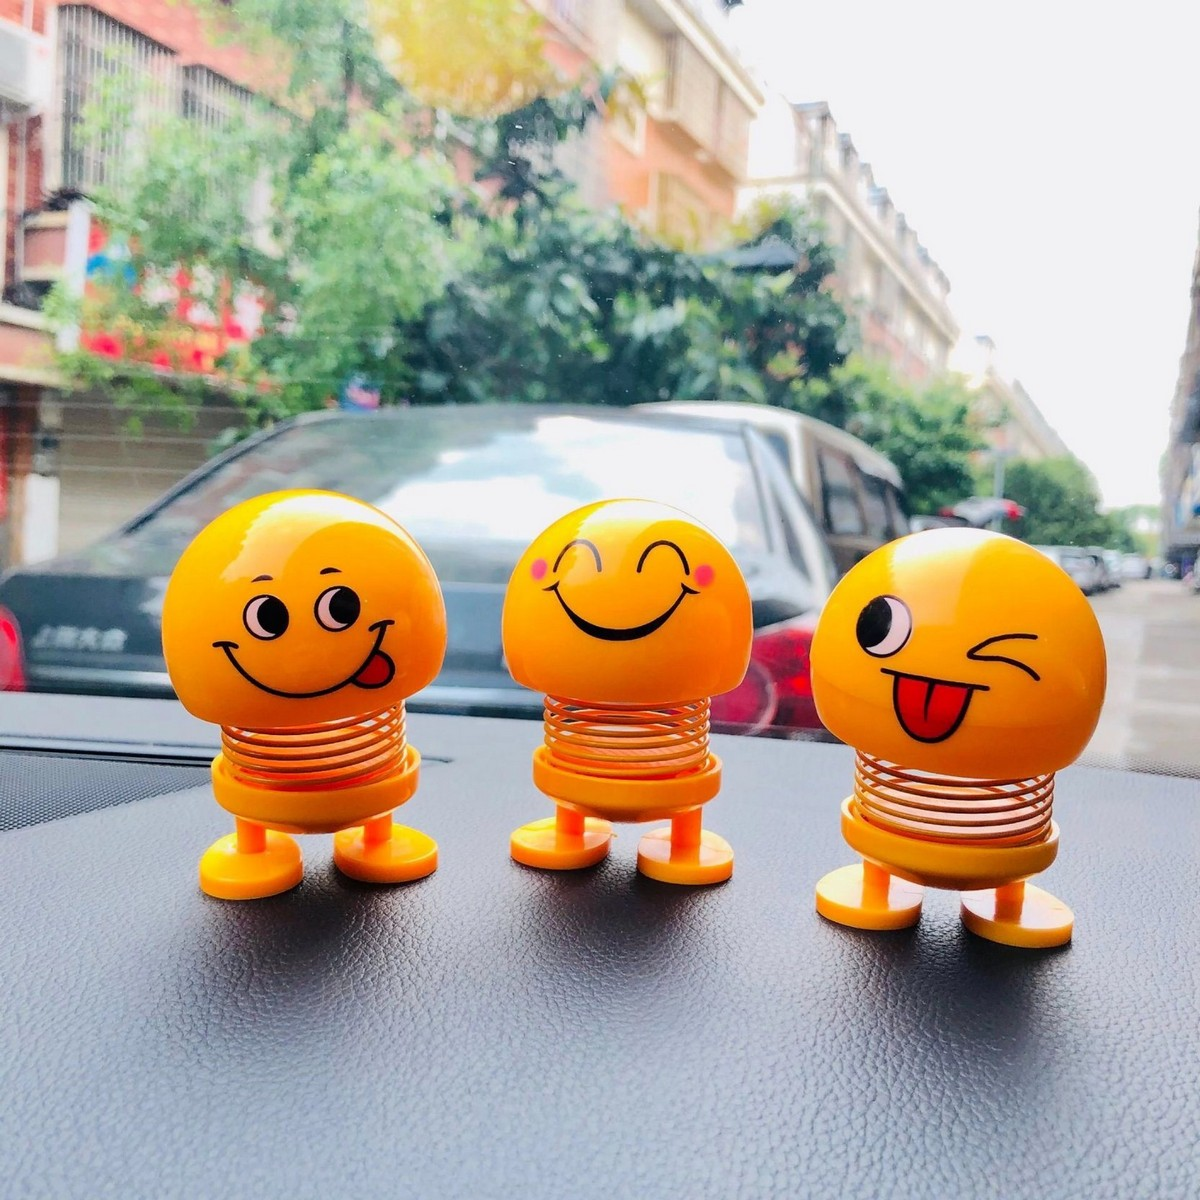 3Pc Emoji Funny Smiley Face Spring Dancing Toy for Car Interior Dashboard